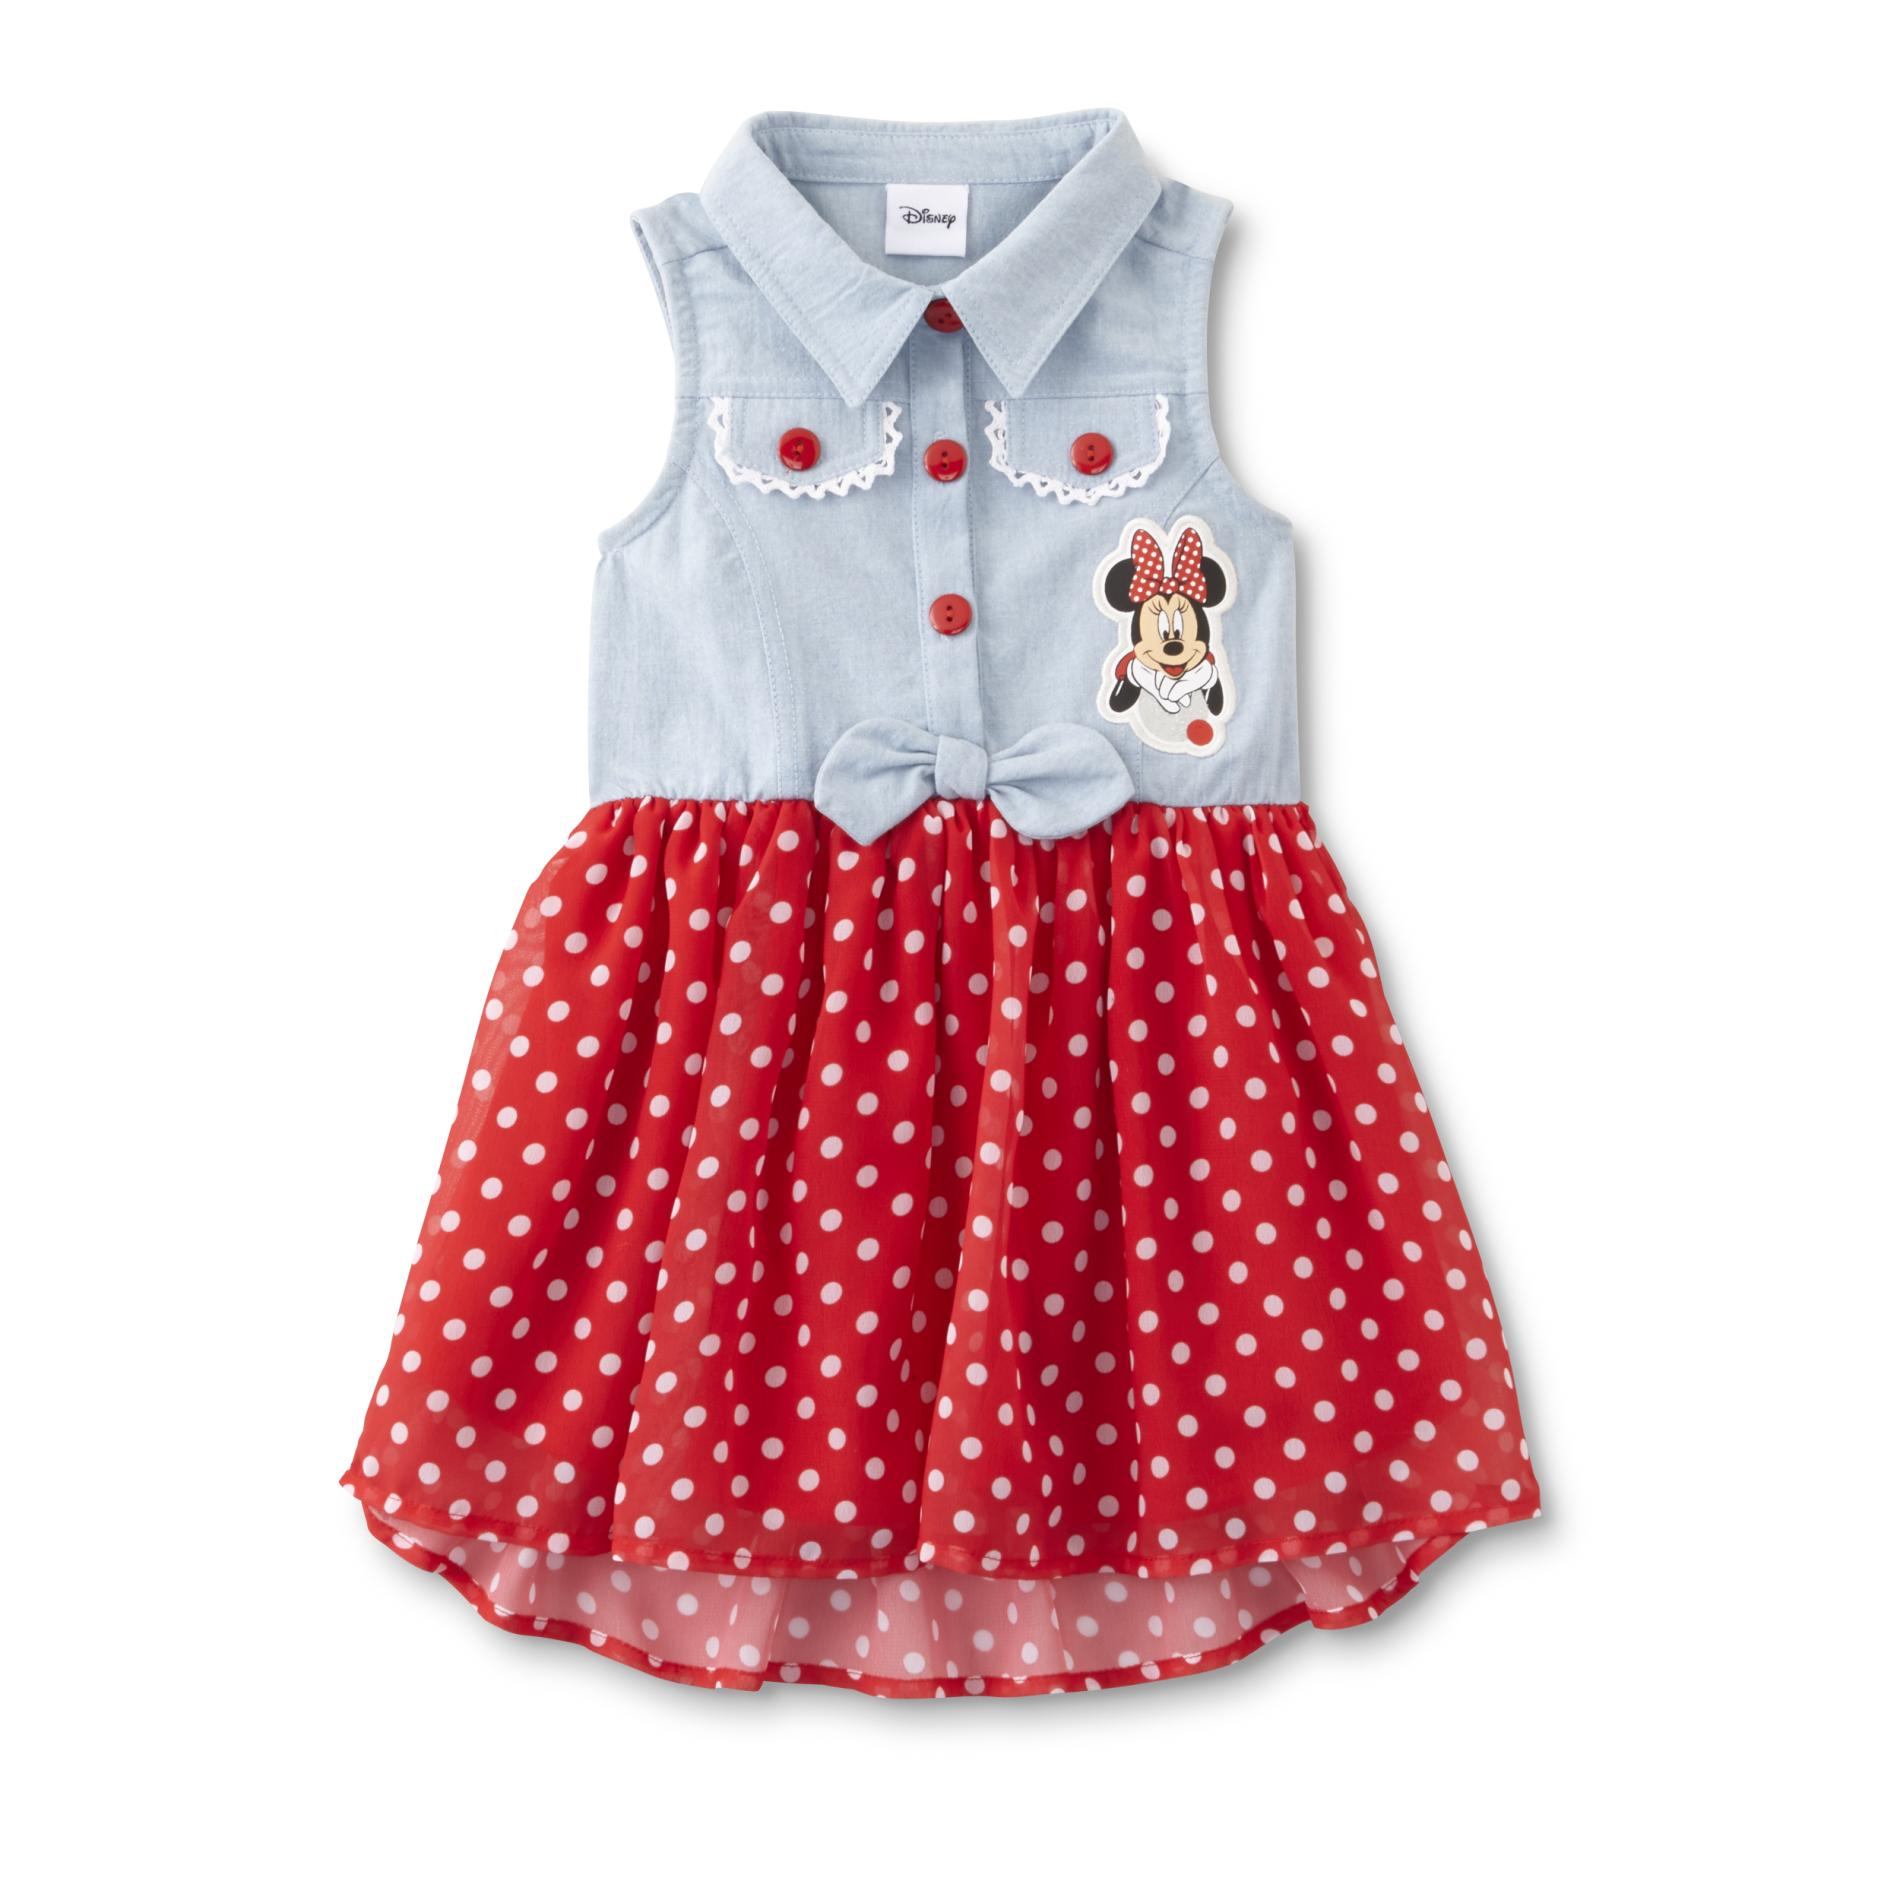 Disney Baby Minnie Mouse Toddler Girl' Sleeveless Dress - Kmart